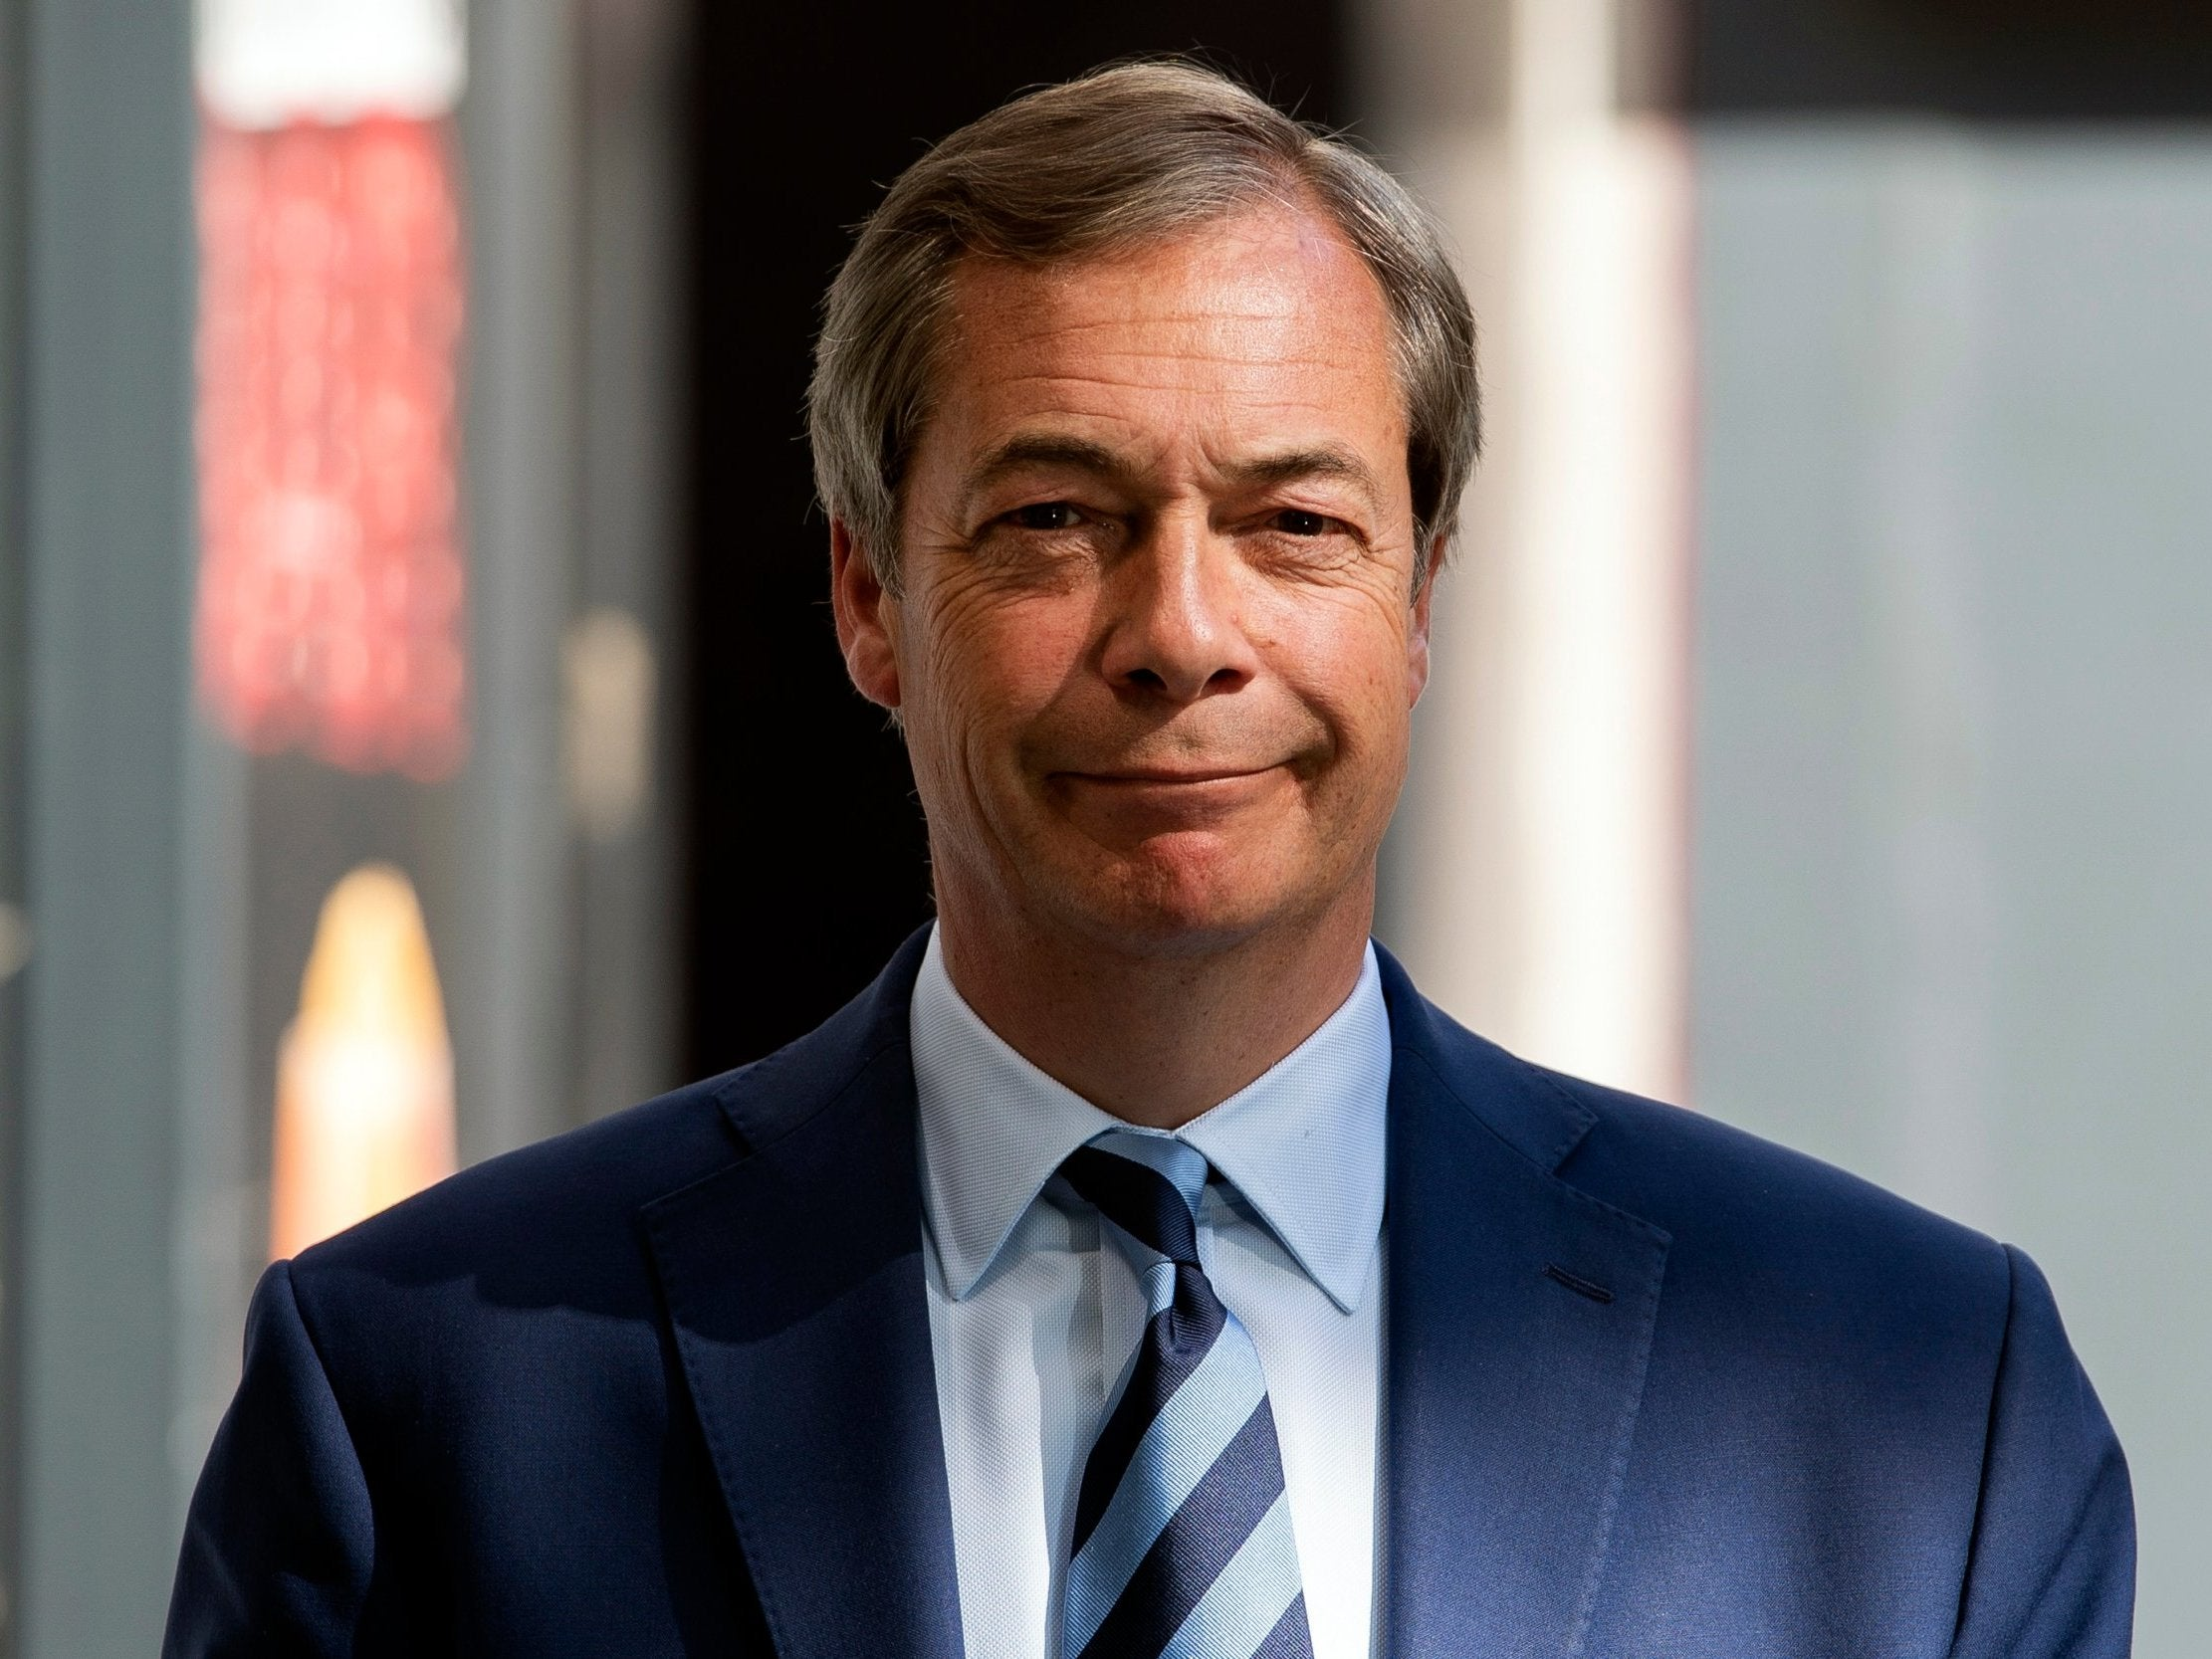 Nigel Farage won't meet me to debate Brexit because he's running scared – just like Theresa May